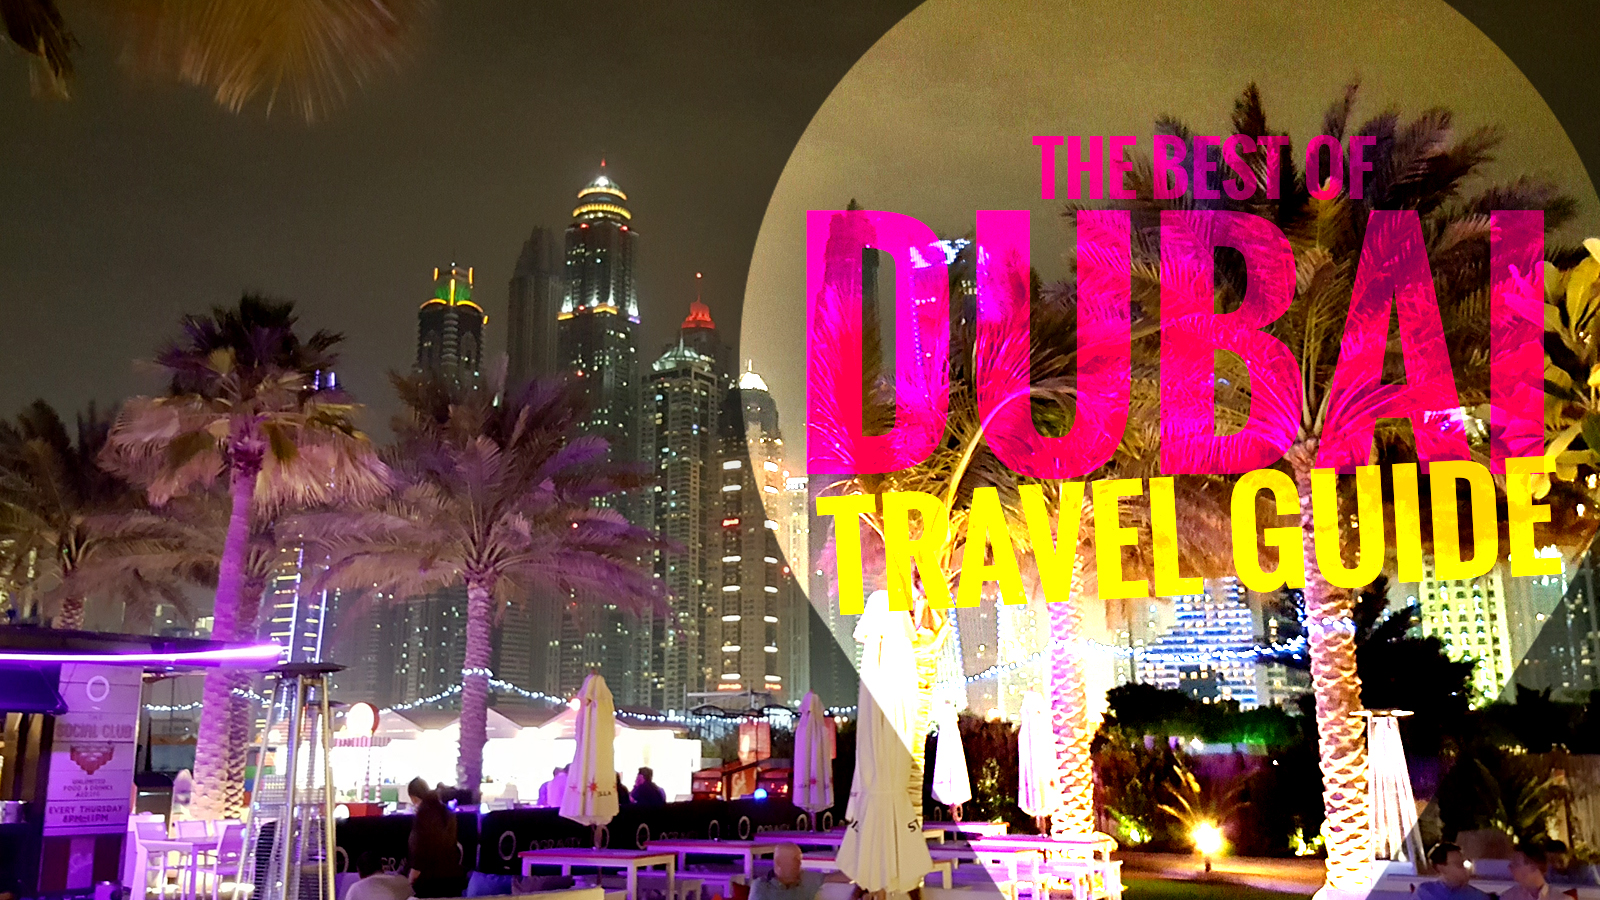 The best of Dubai travel guide